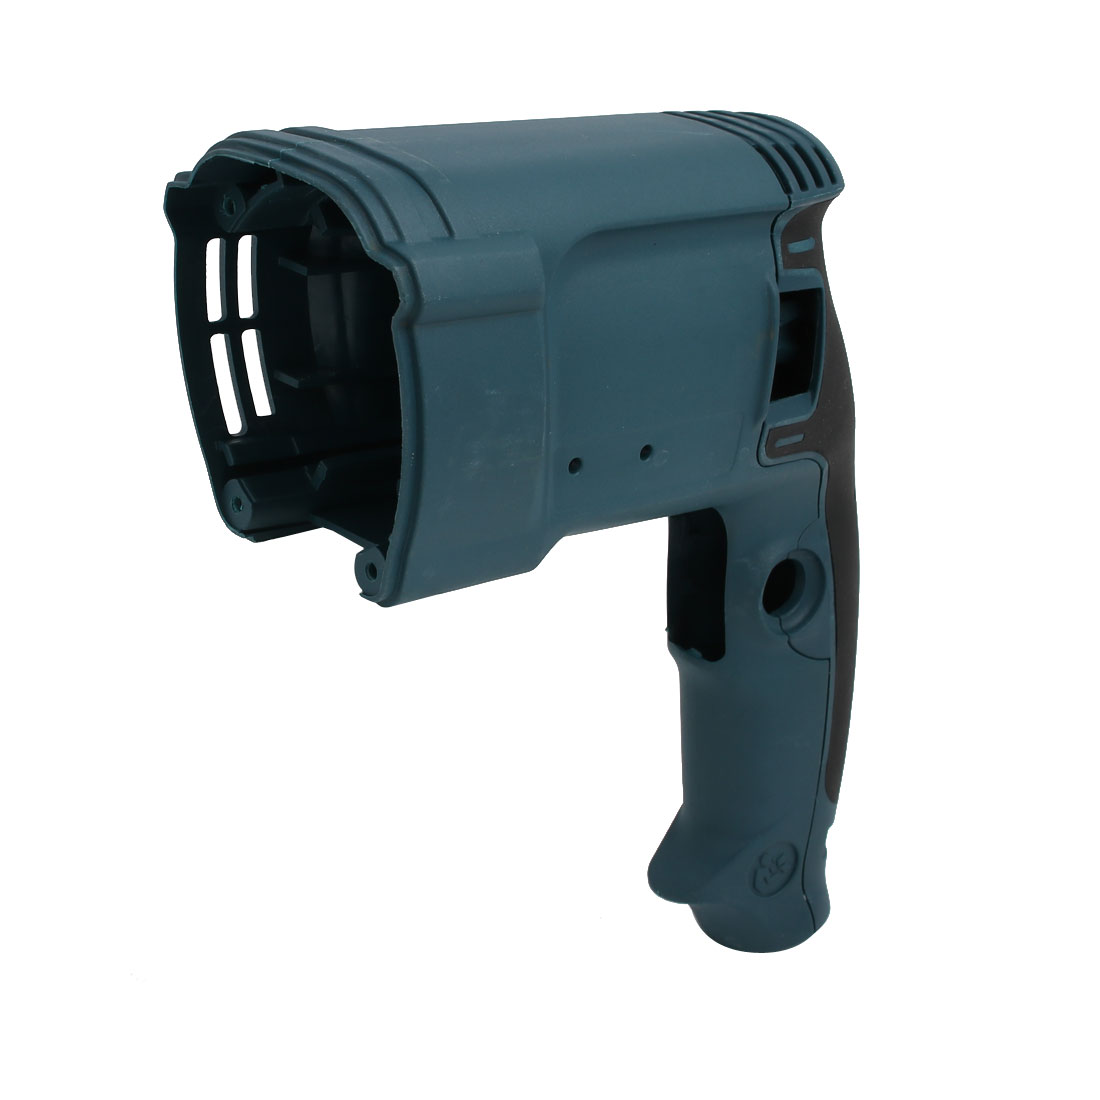 Power Tool Fittings Electric Hammer Shell Casing for Bosch GBH2-26D/DE/DRE - image 4 of 4